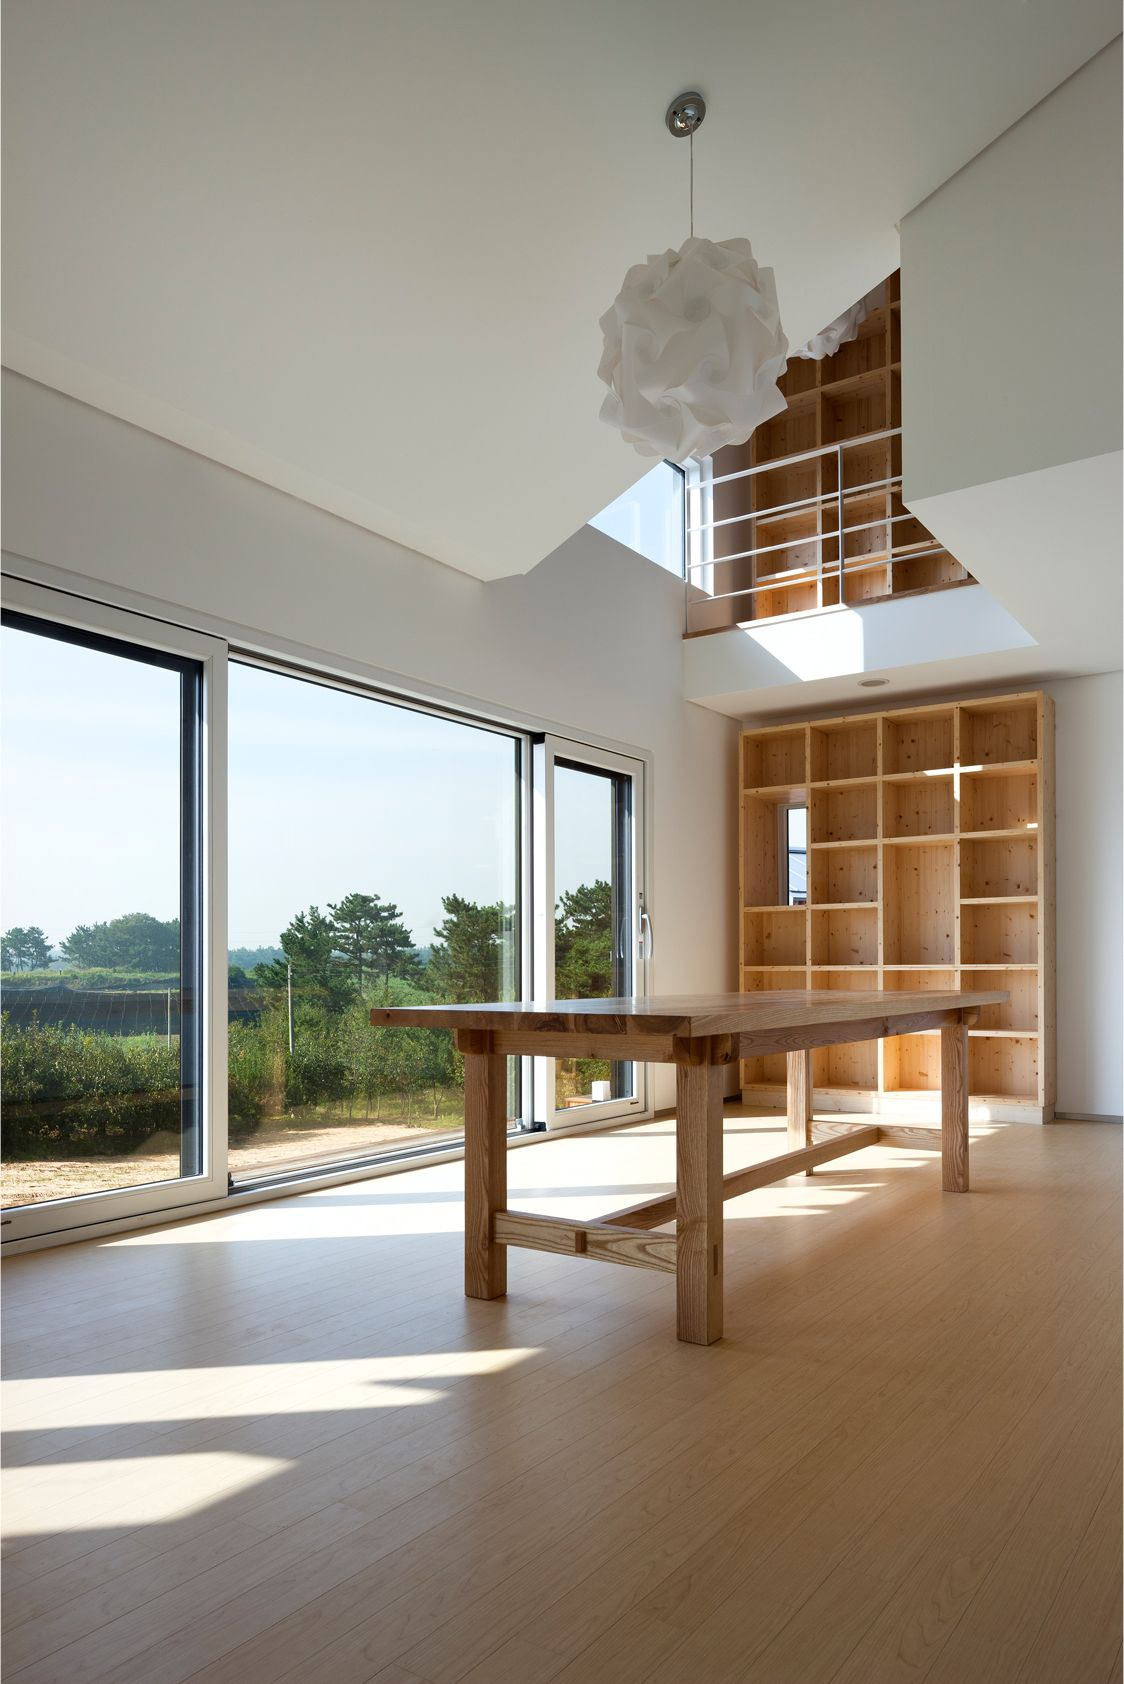 House of January, House on the Demarcation | studio_GAON | Photo: Youngchae Park | Archinect